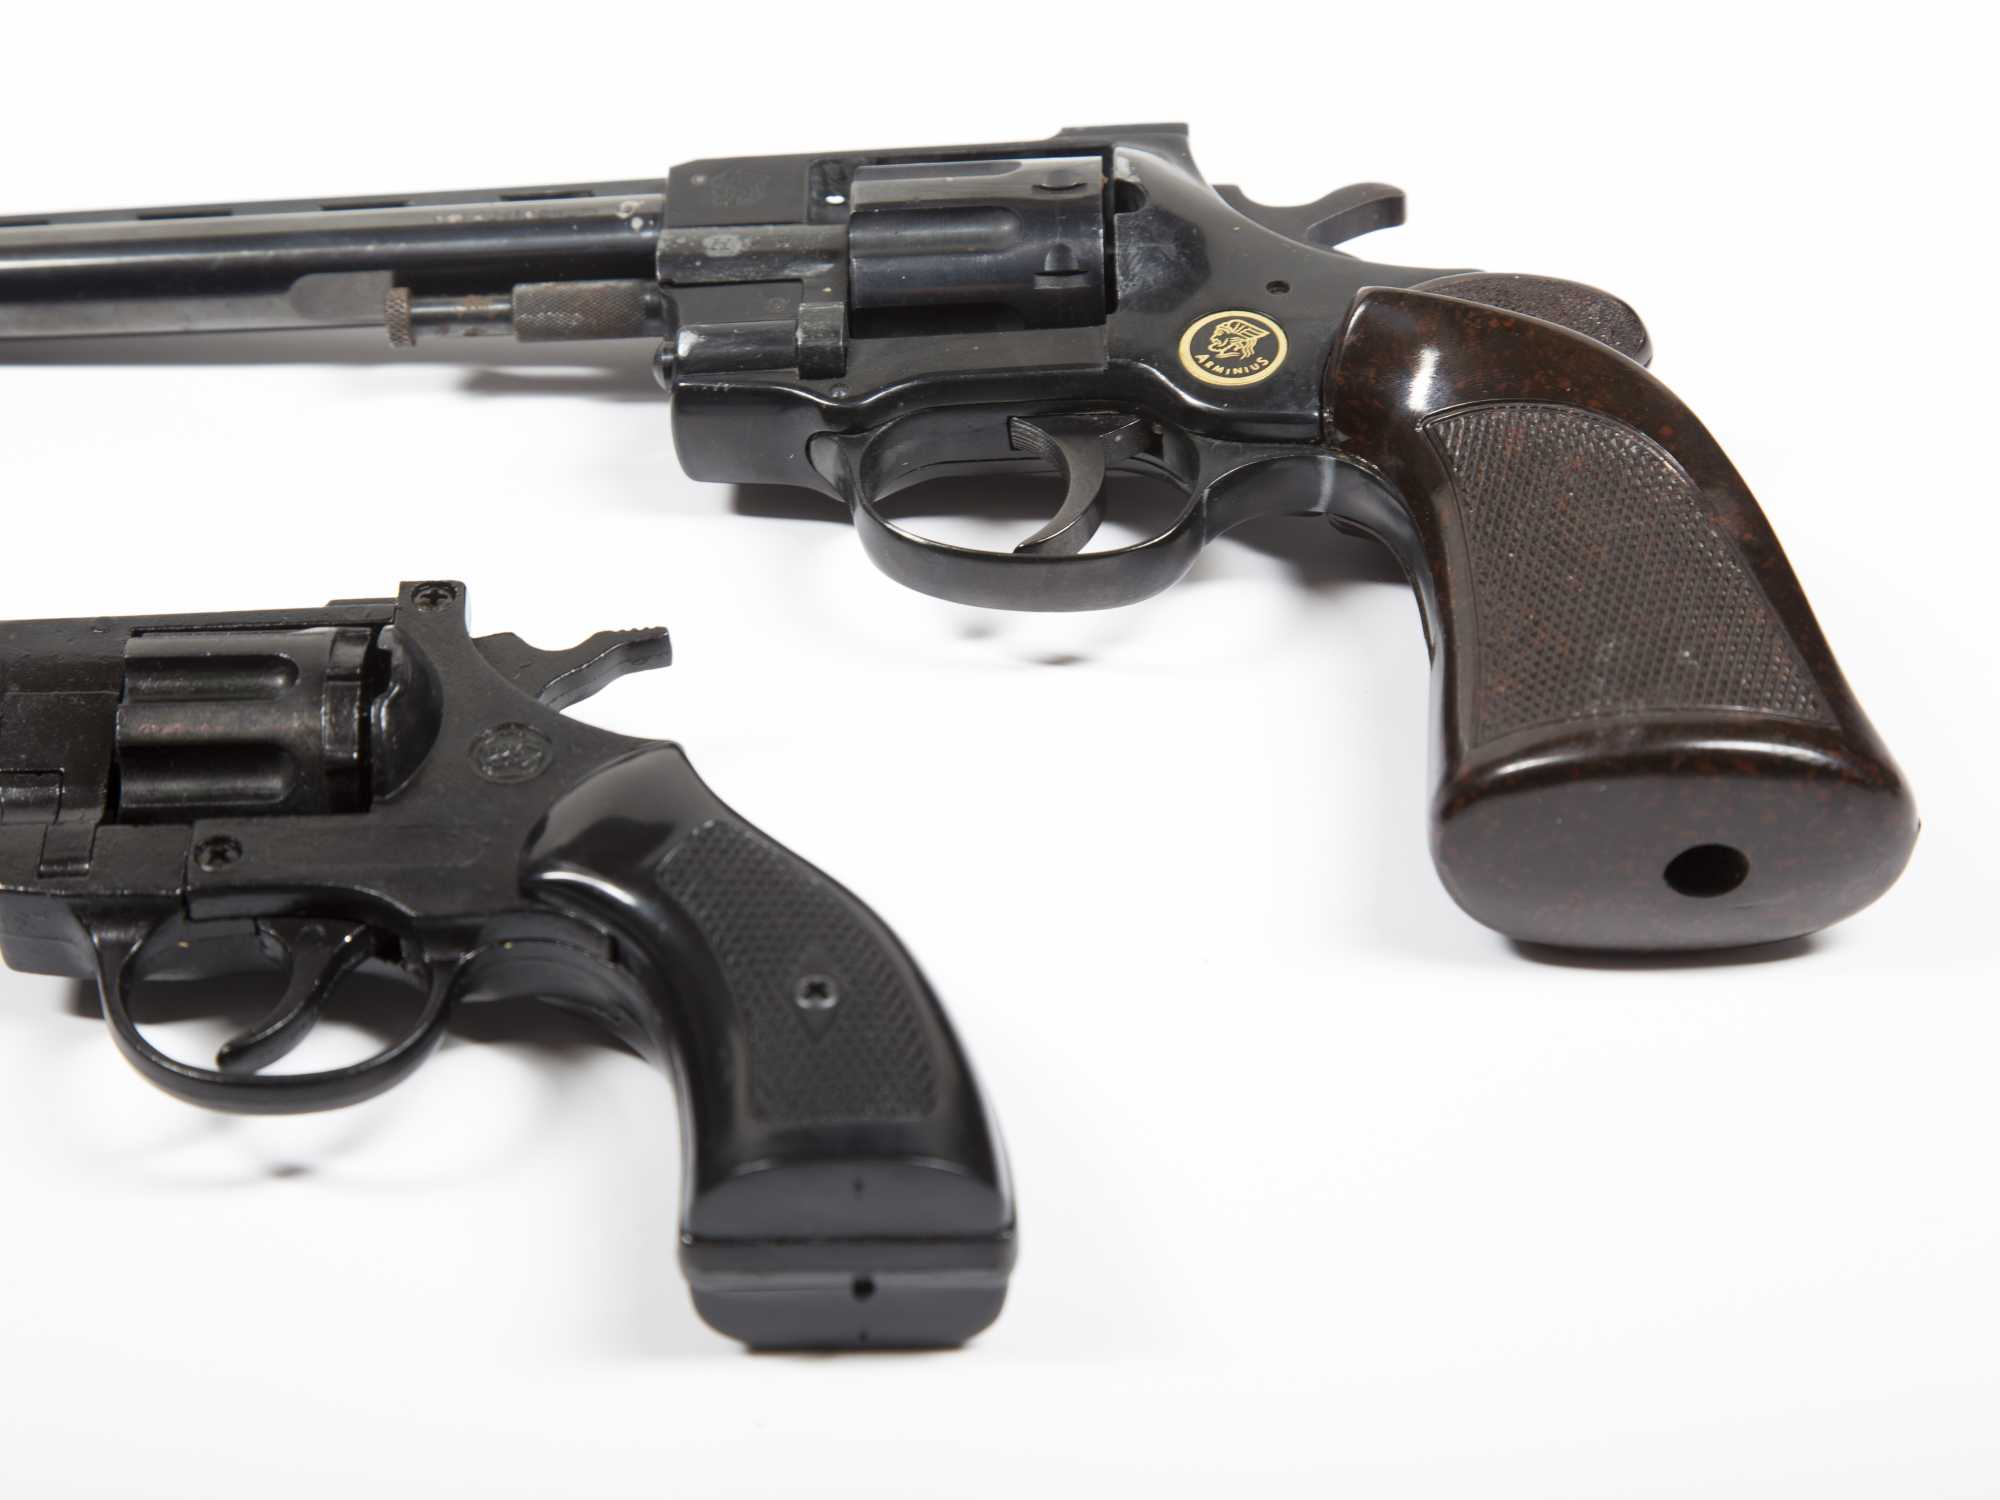 Lot of Two: BBM Double Action Starter Pistol in 22 Blank Cal 8 Round